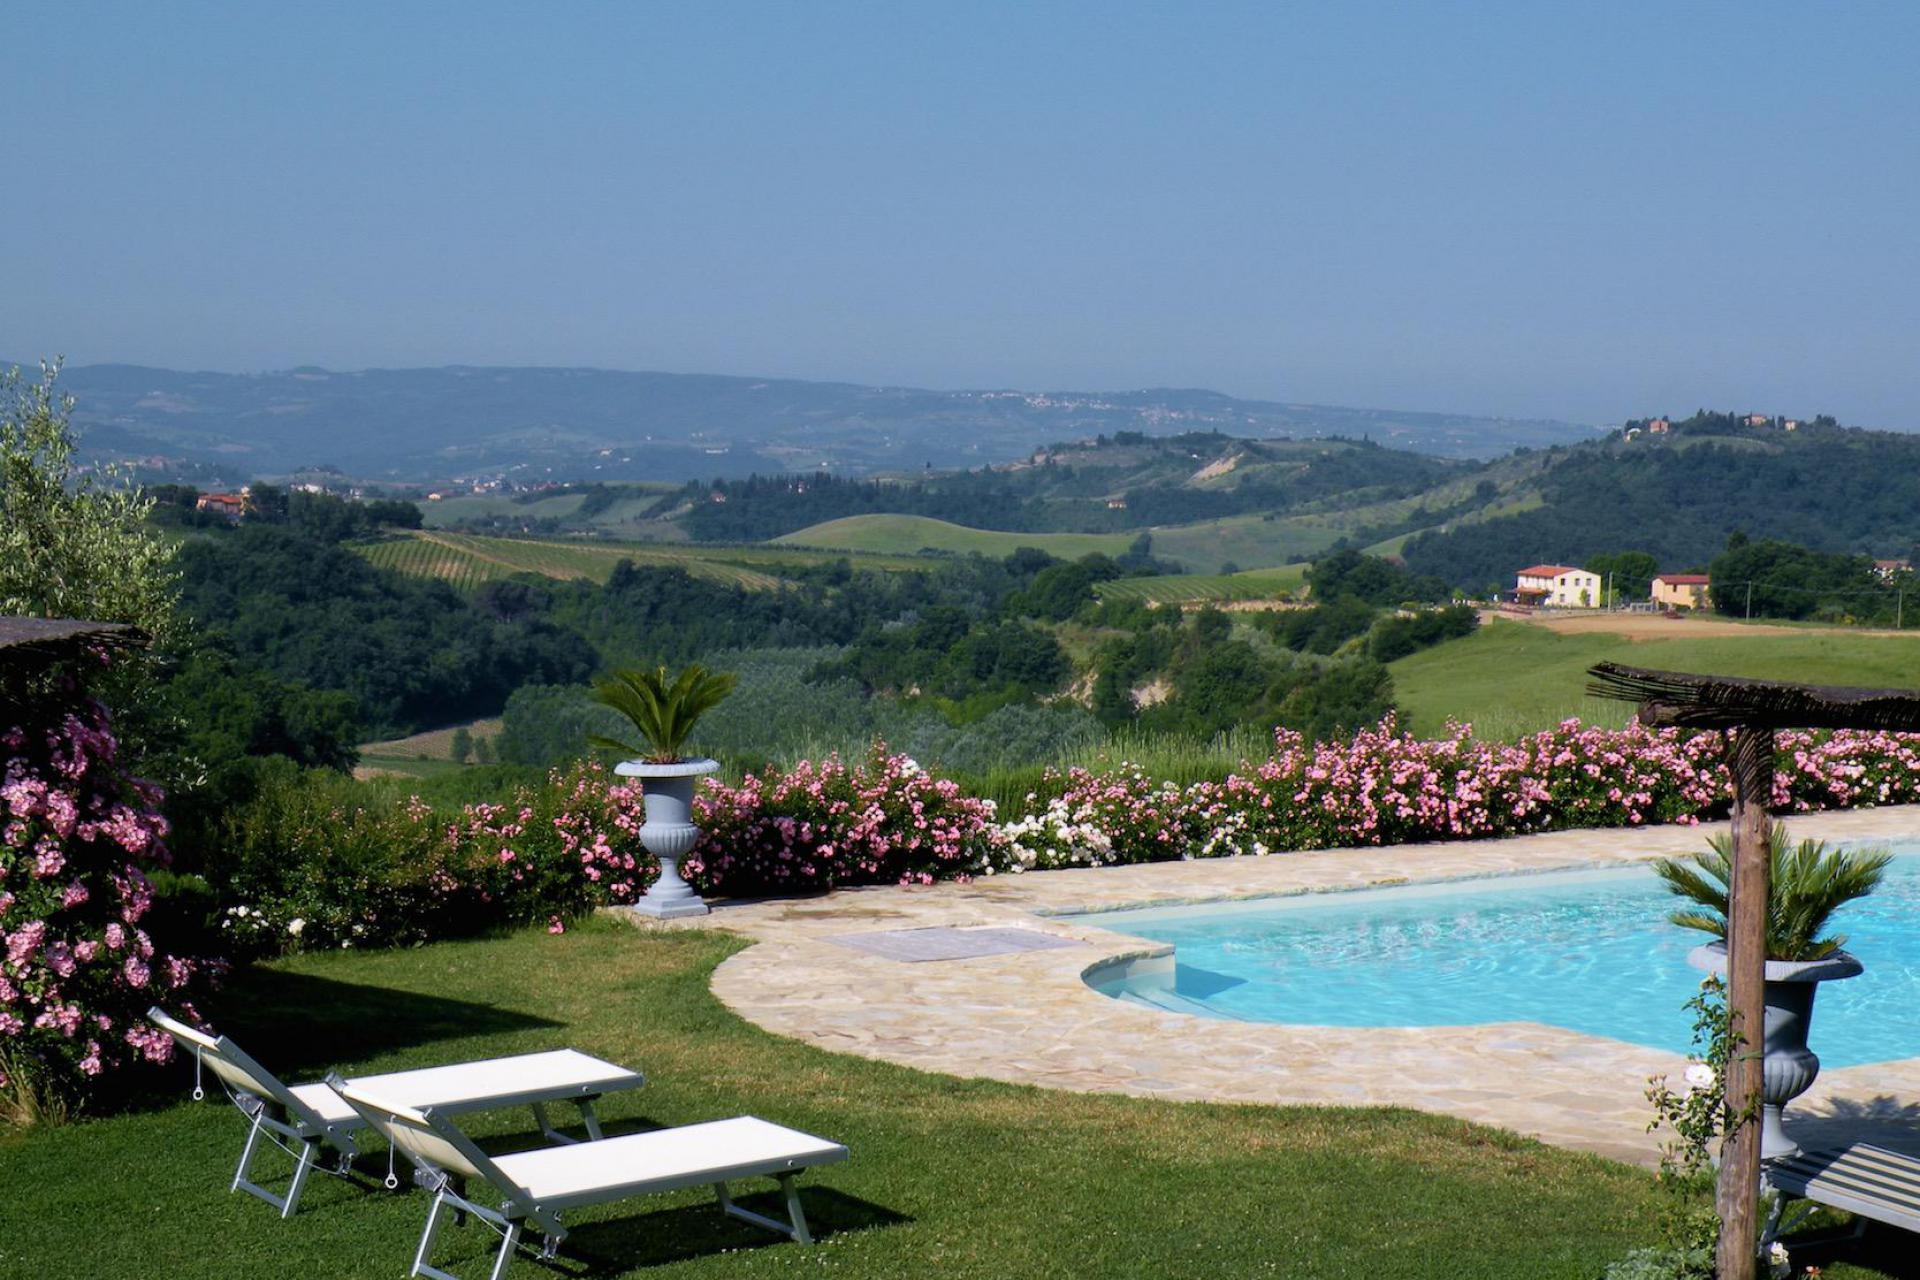 Agriturismo Tuscany Agriturismo Tuscany in olivegrove with amazing views